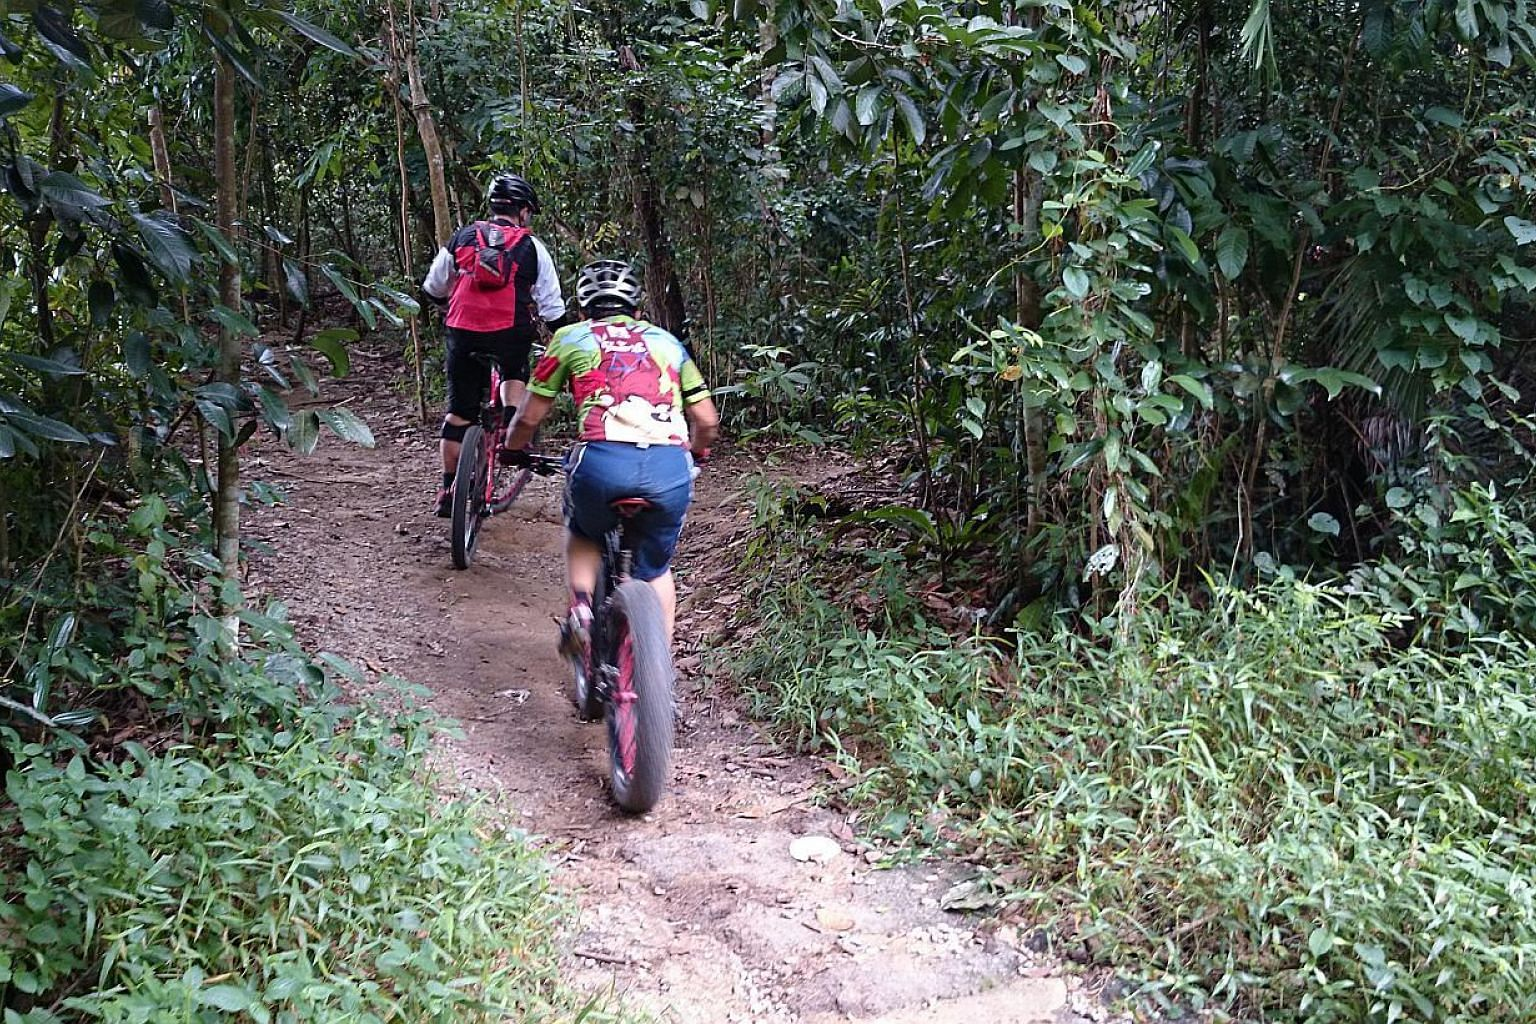 Mountain bikers have been riding on the 3km-long Butterfly trail for years. But the trail, which is located off Chestnut Avenue in the Central Catchment Nature Reserve, is likely to be closed permanently because of the construction of Chestnut Nature